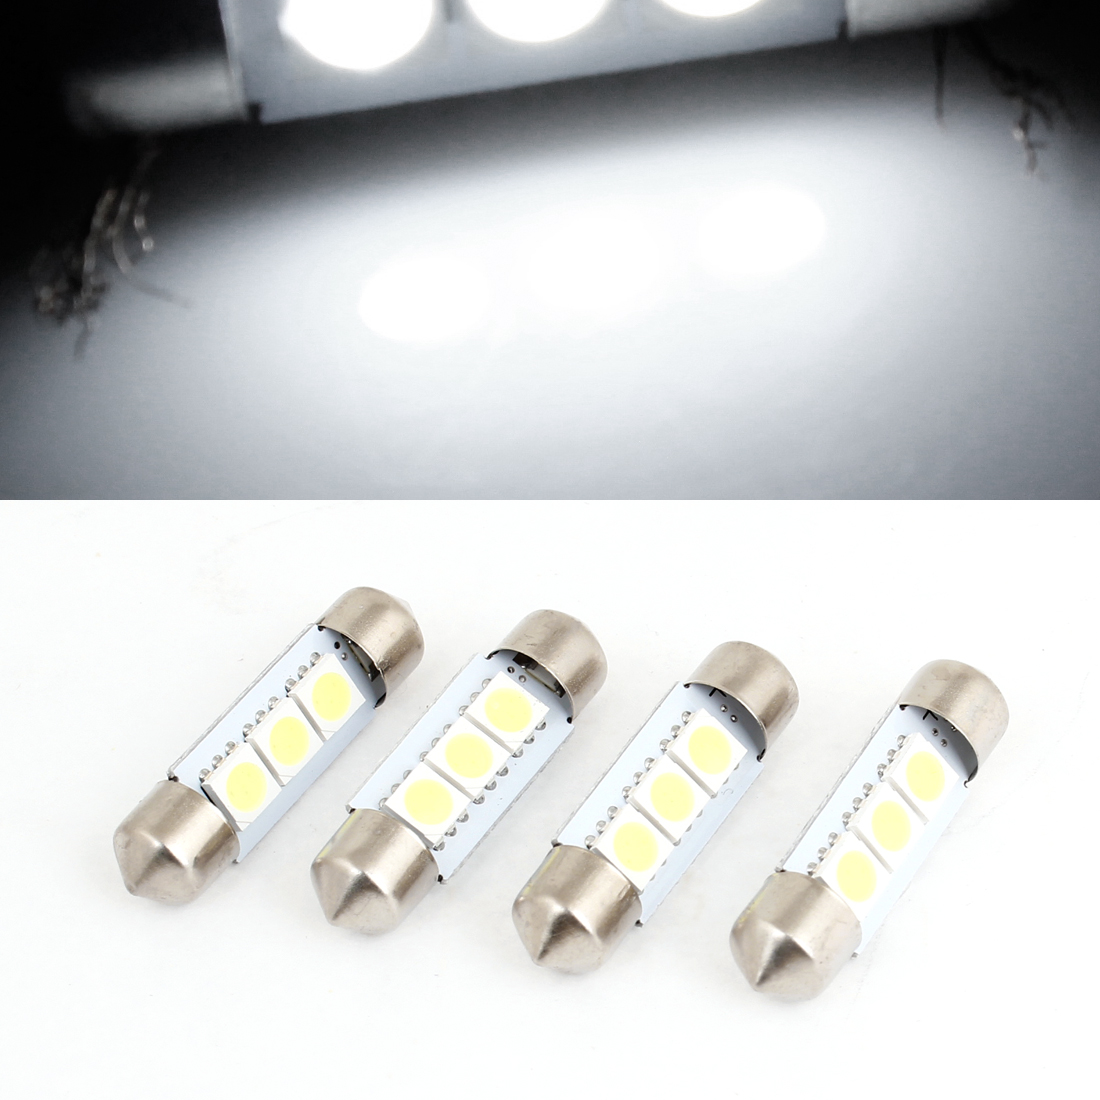 4PCS 36mm White 3 LED 5050 SMD Festoon Light Bulb 6413 for Car Interior Dome Lamp